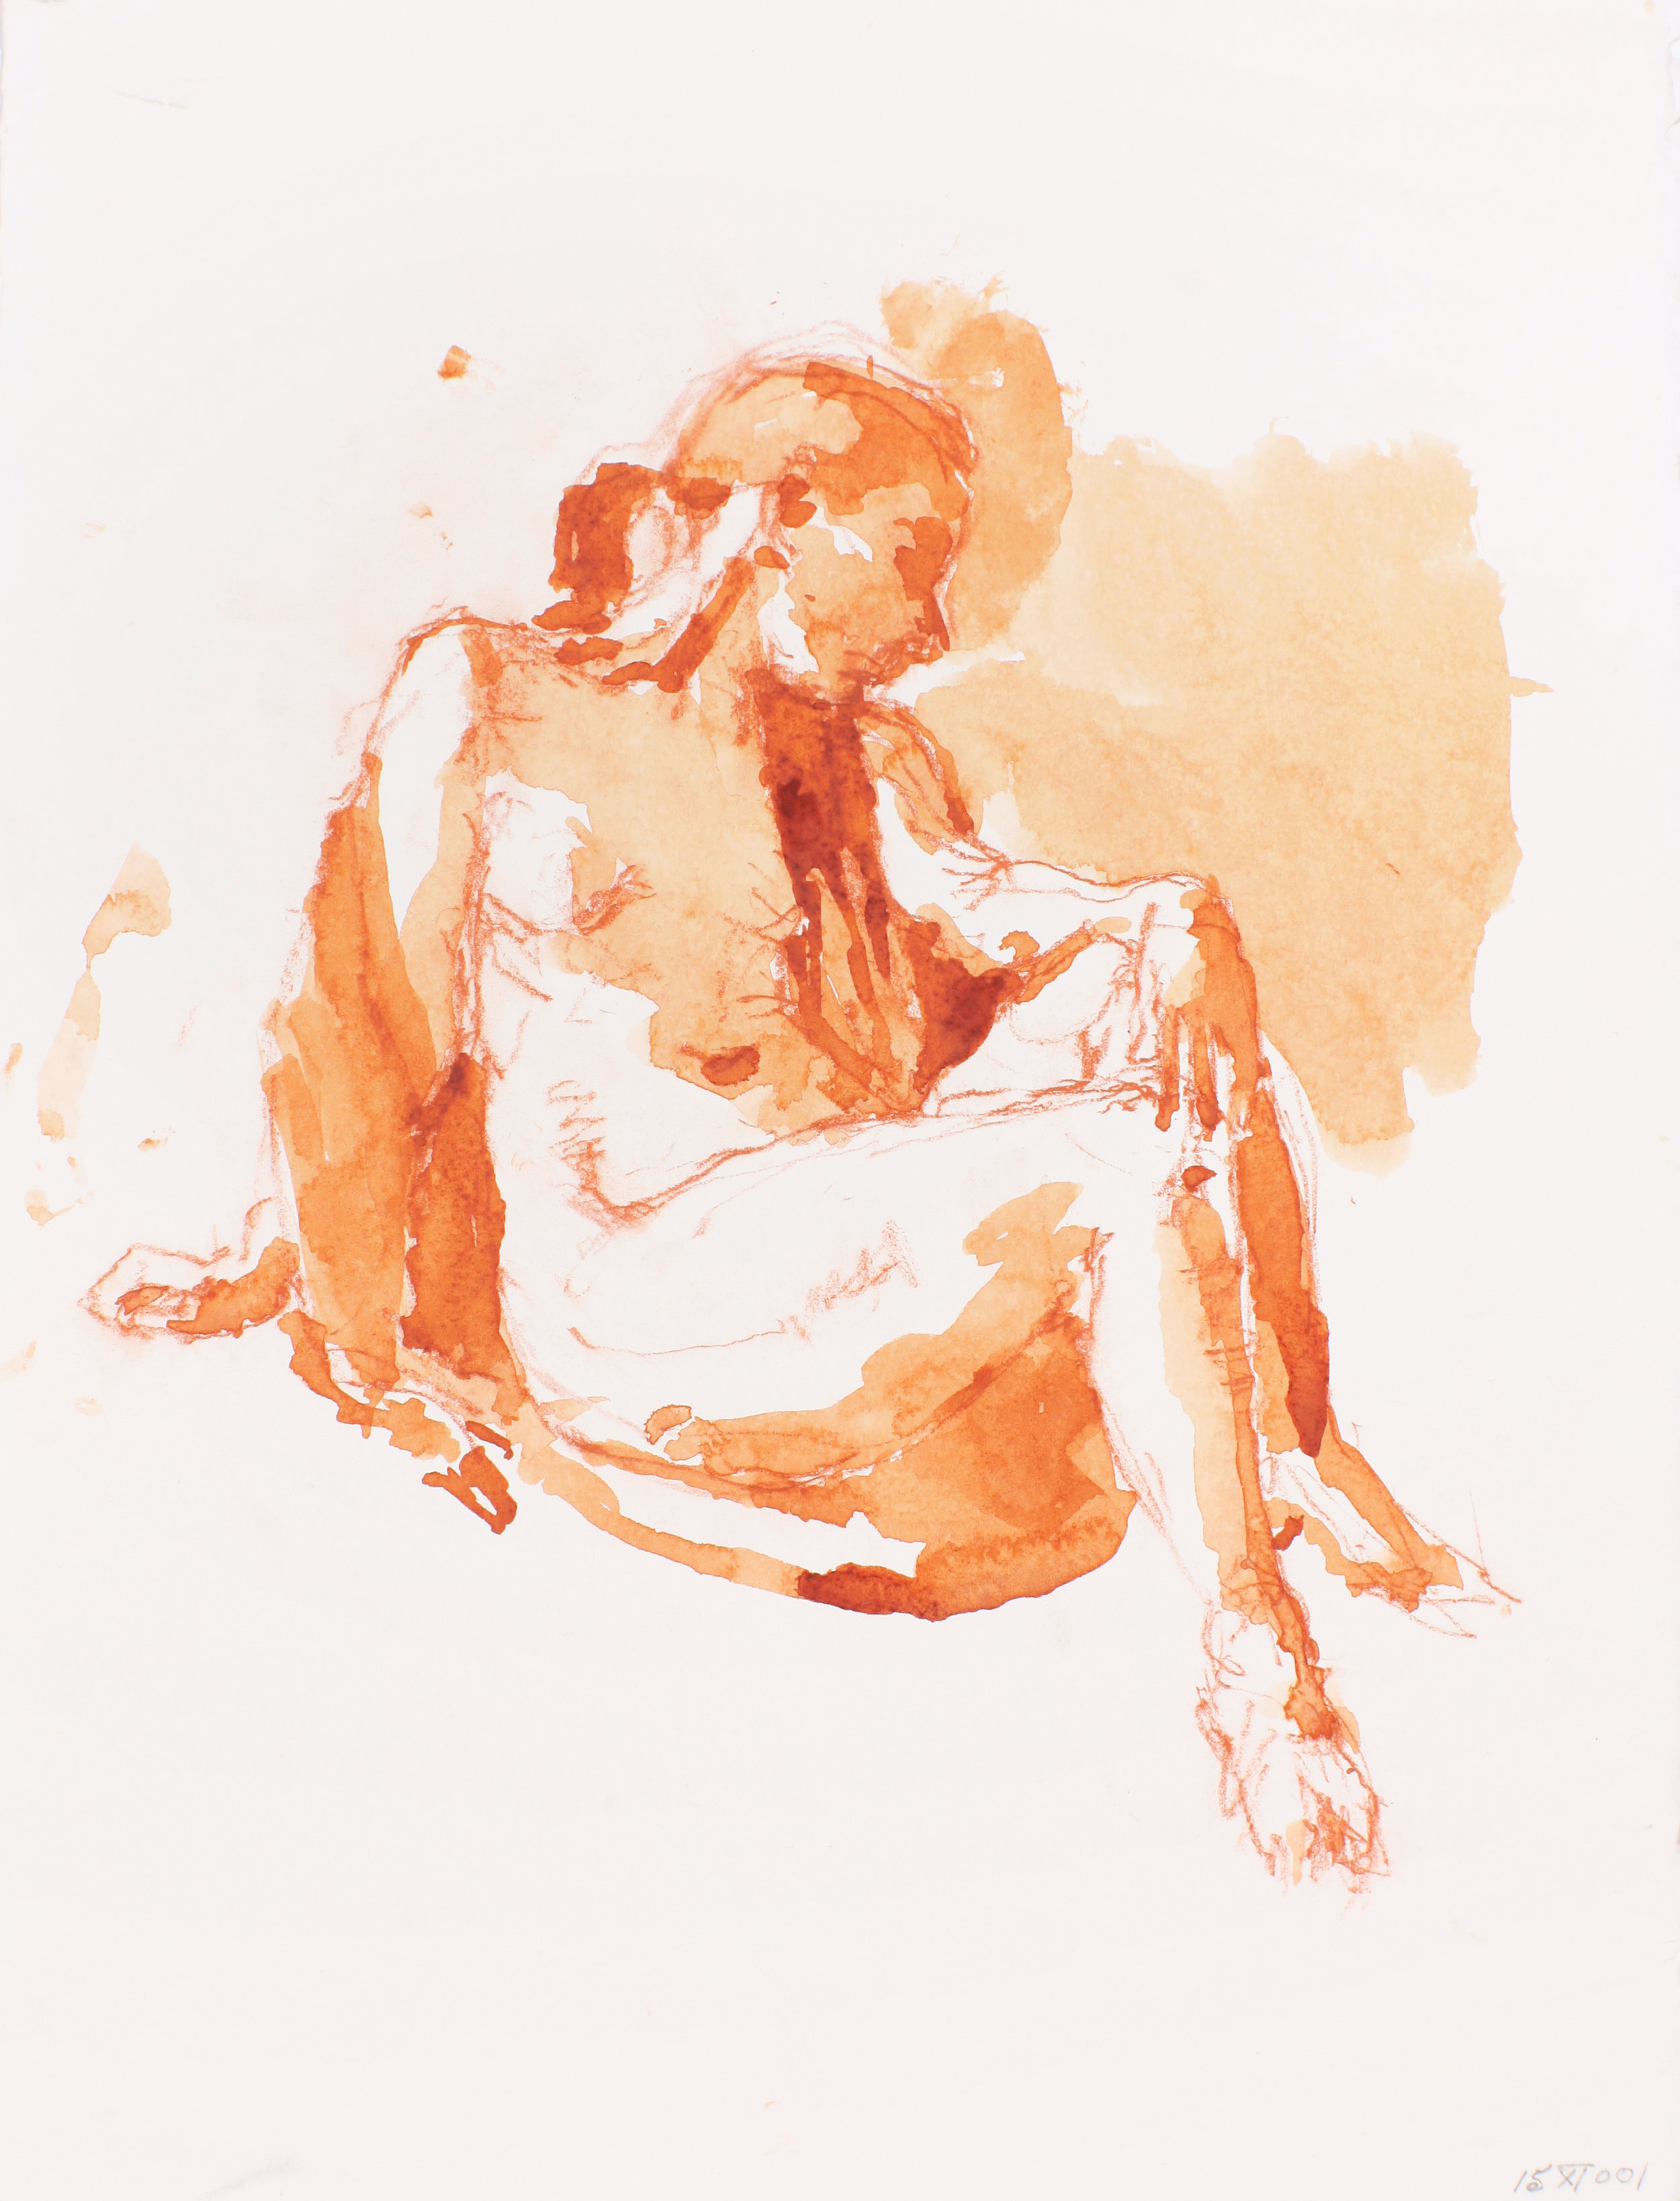 2001_Seated_Nude_with_Shawl_in_Three_Quarter_Profile_watercolour_and_red_conté_on_paper_15x11in_WPF200.jpg